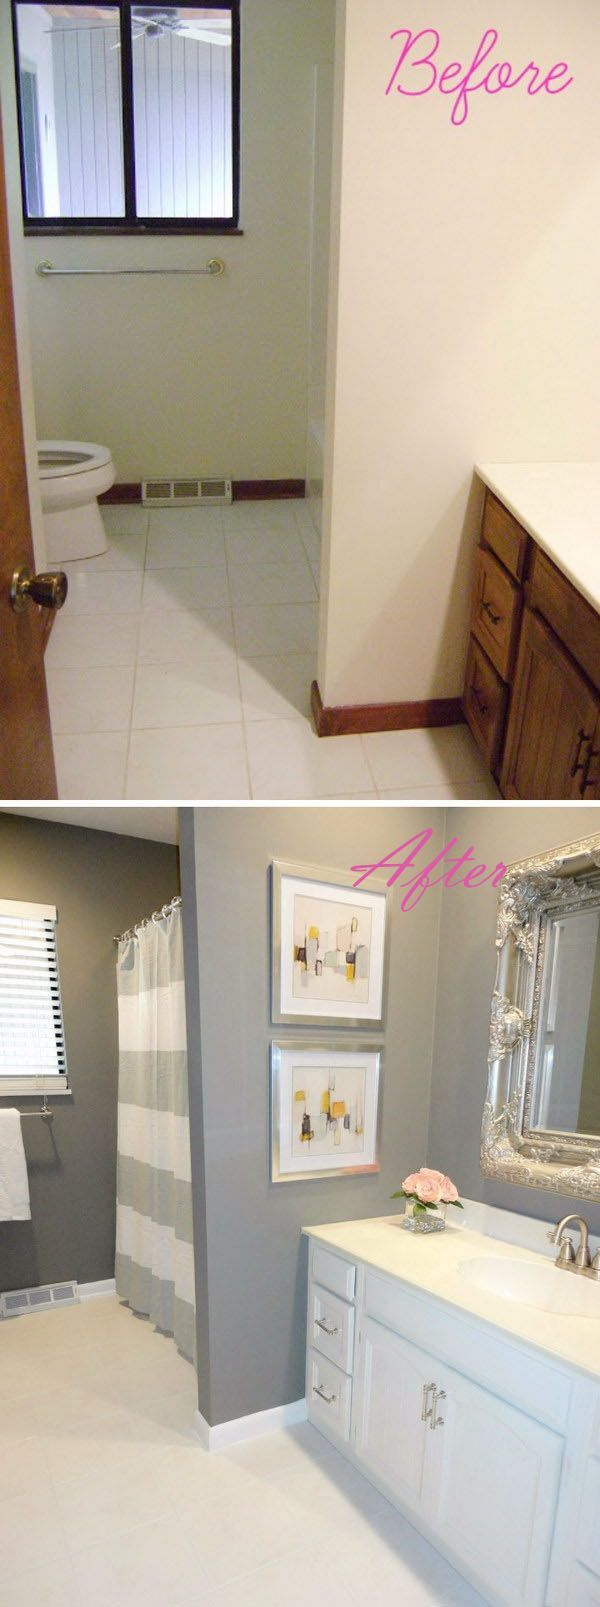 bathroom remodeling wilmington nc. Before And After: 20+ Awesome Bathroom Makeovers DIY Remodel On A Budget. Remodeling Wilmington Nc